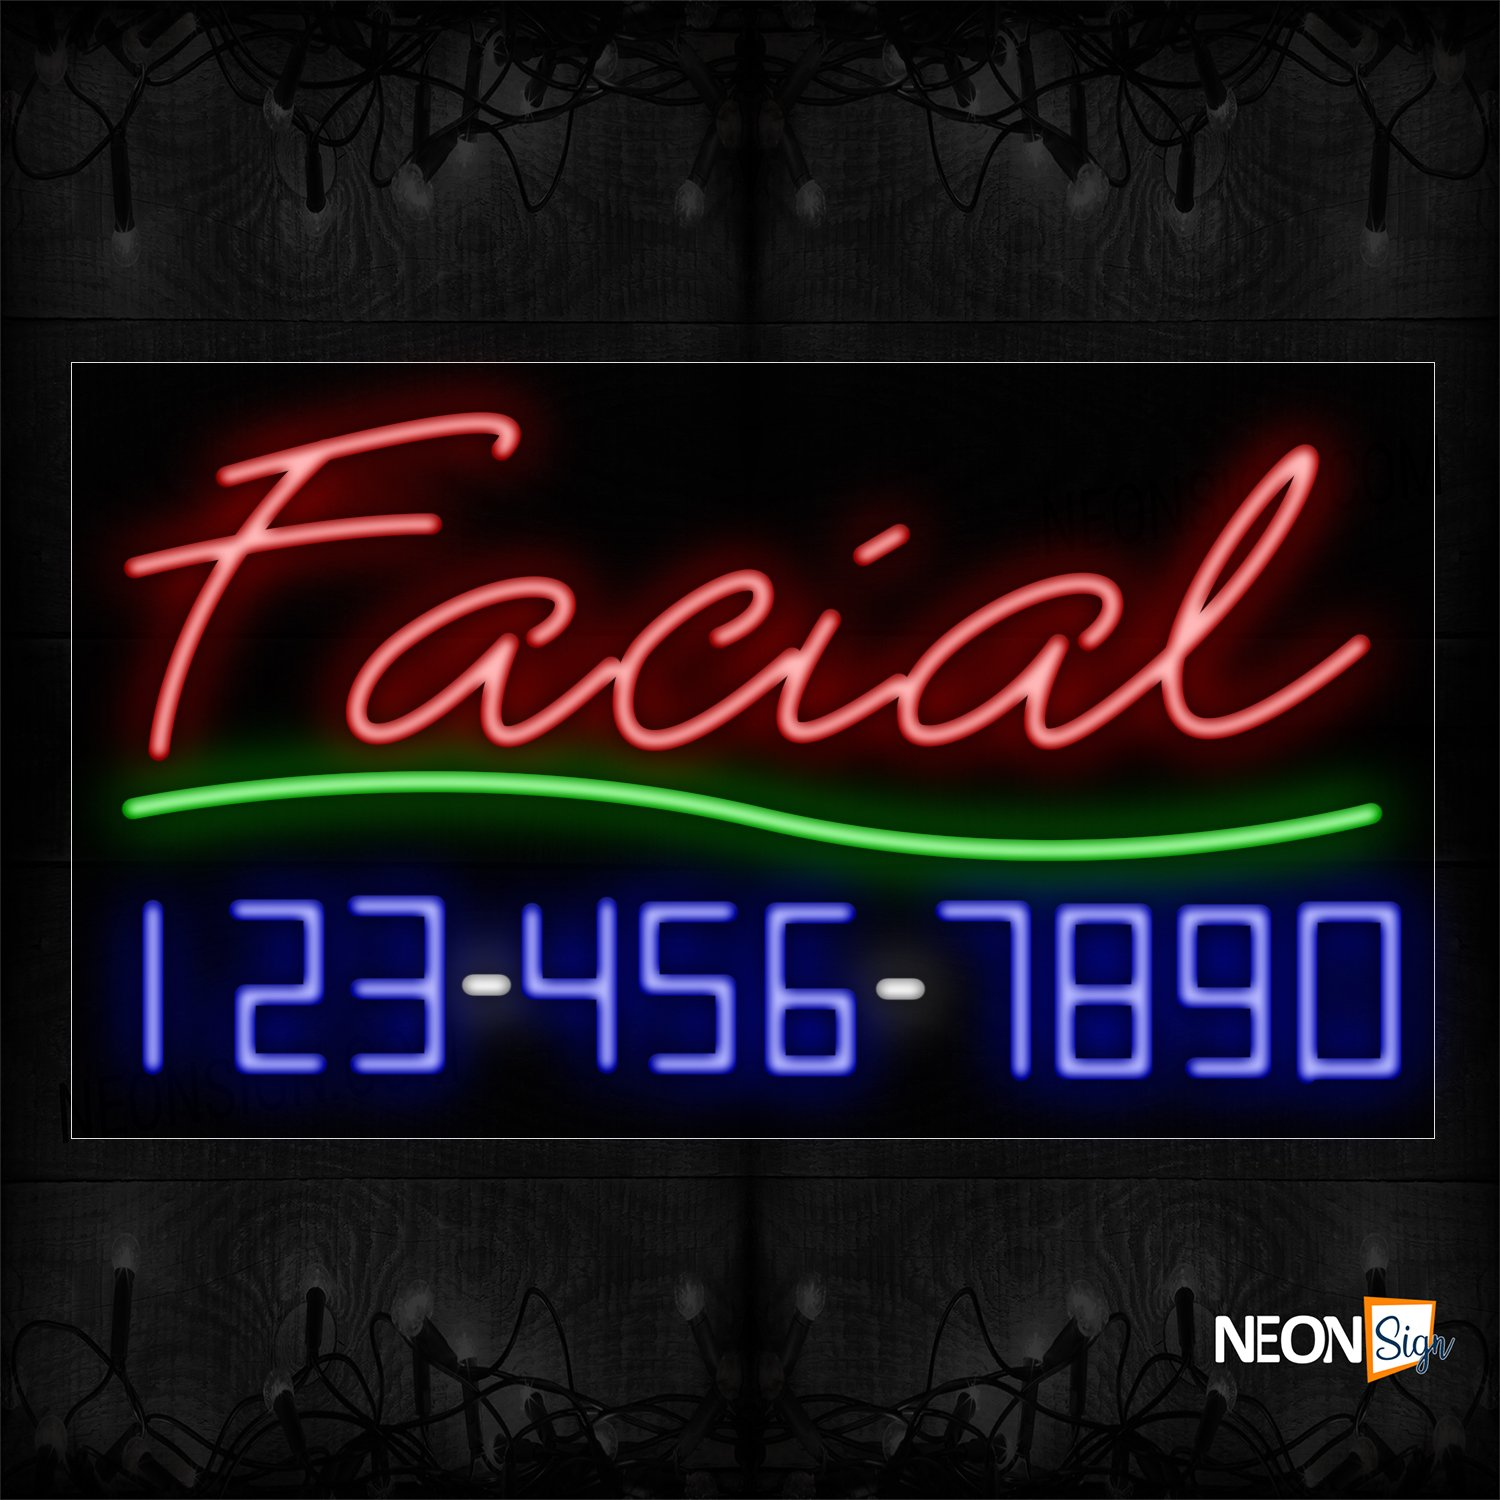 Image of 15002 Facial With Contact No Neon Signs_20x37 Black Backing